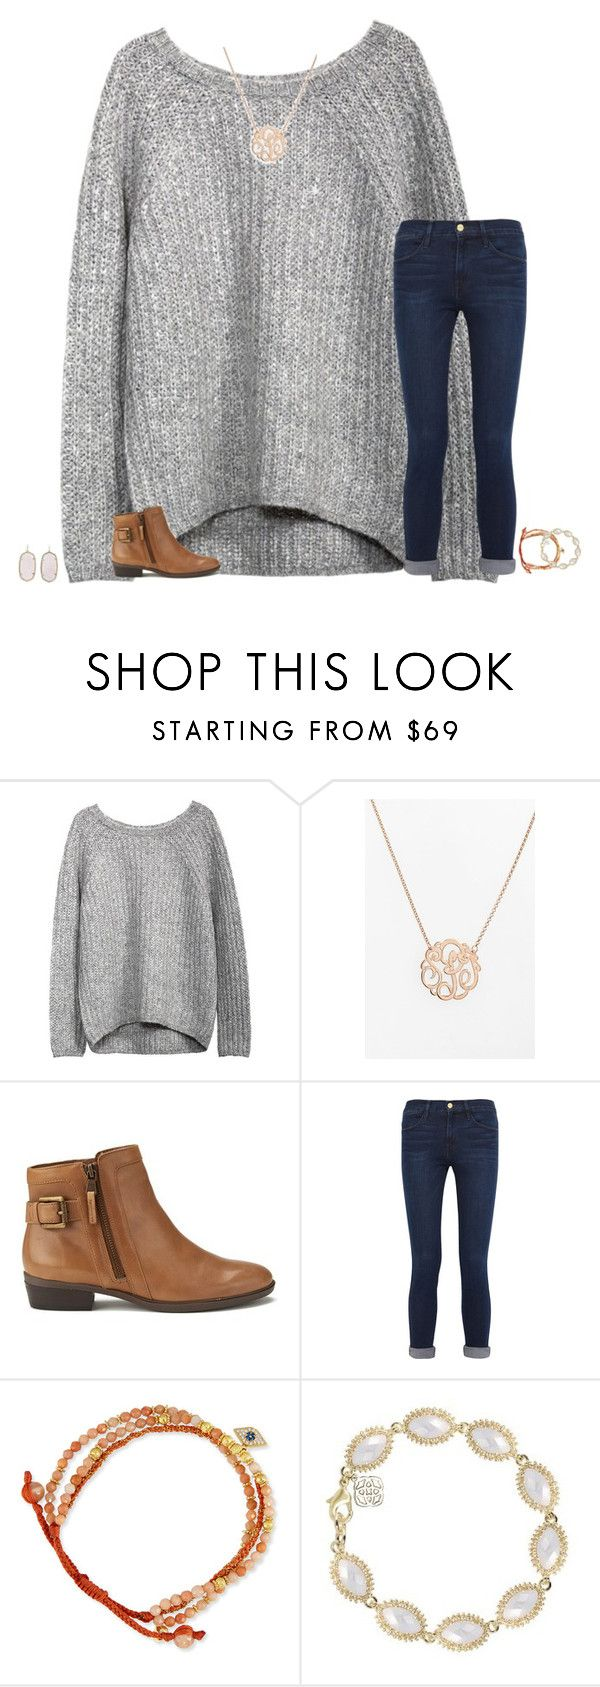 """lost in the finals"" by secfashion13 ❤ liked on Polyvore featuring Argento Vivo, Lauren Ralph Lauren, Frame Denim, Tai, Kendra Scott, women's clothing, women, female, woman and misses"